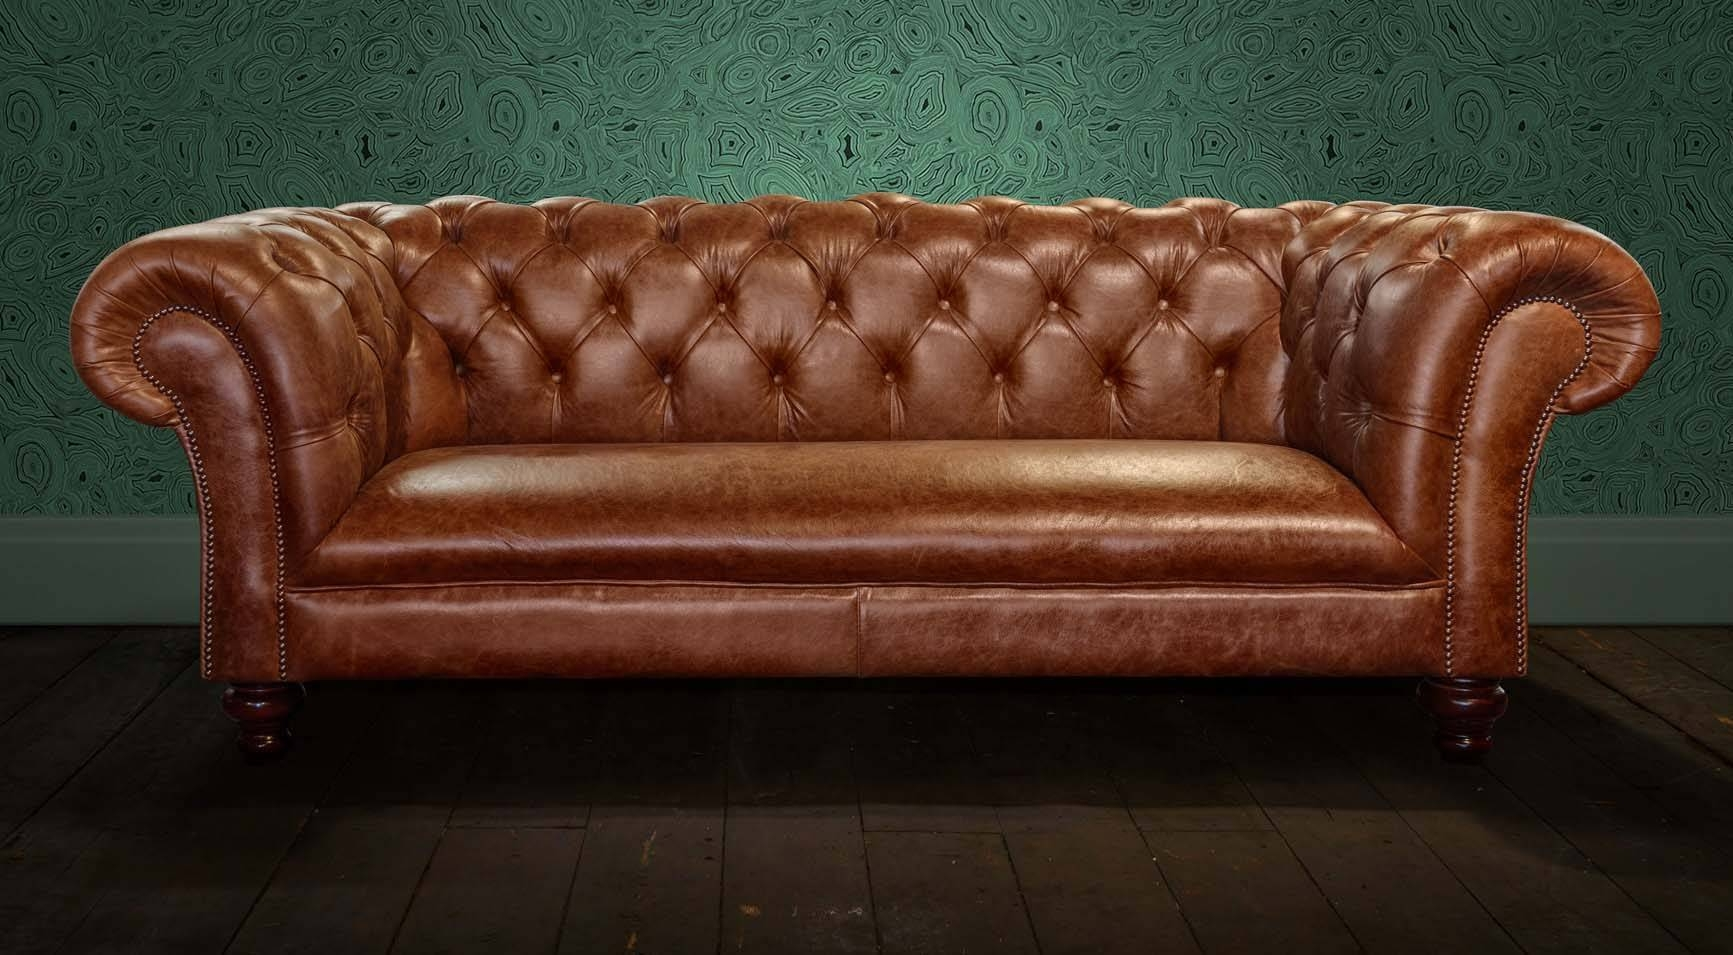 Chesterfields Of England | The Original Chesterfield Company for Chesterfield Furniture (Image 16 of 30)